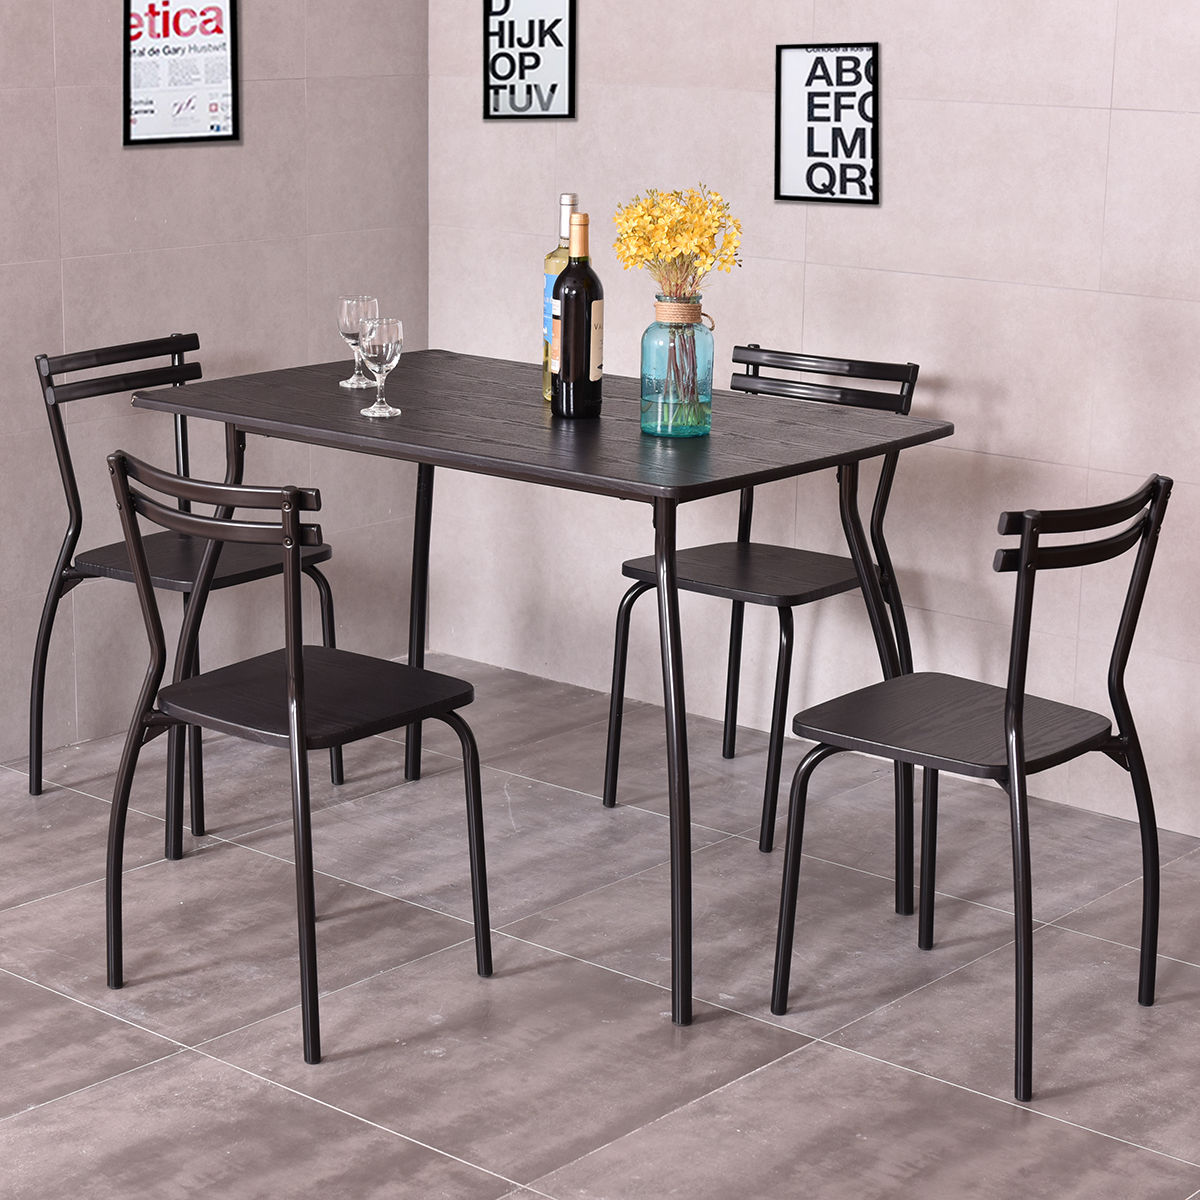 Costway 5 Piece Dining Set Table And 4 Chairs Home Kitchen Room Breakfast Furniture & Breakfast Nook Tables